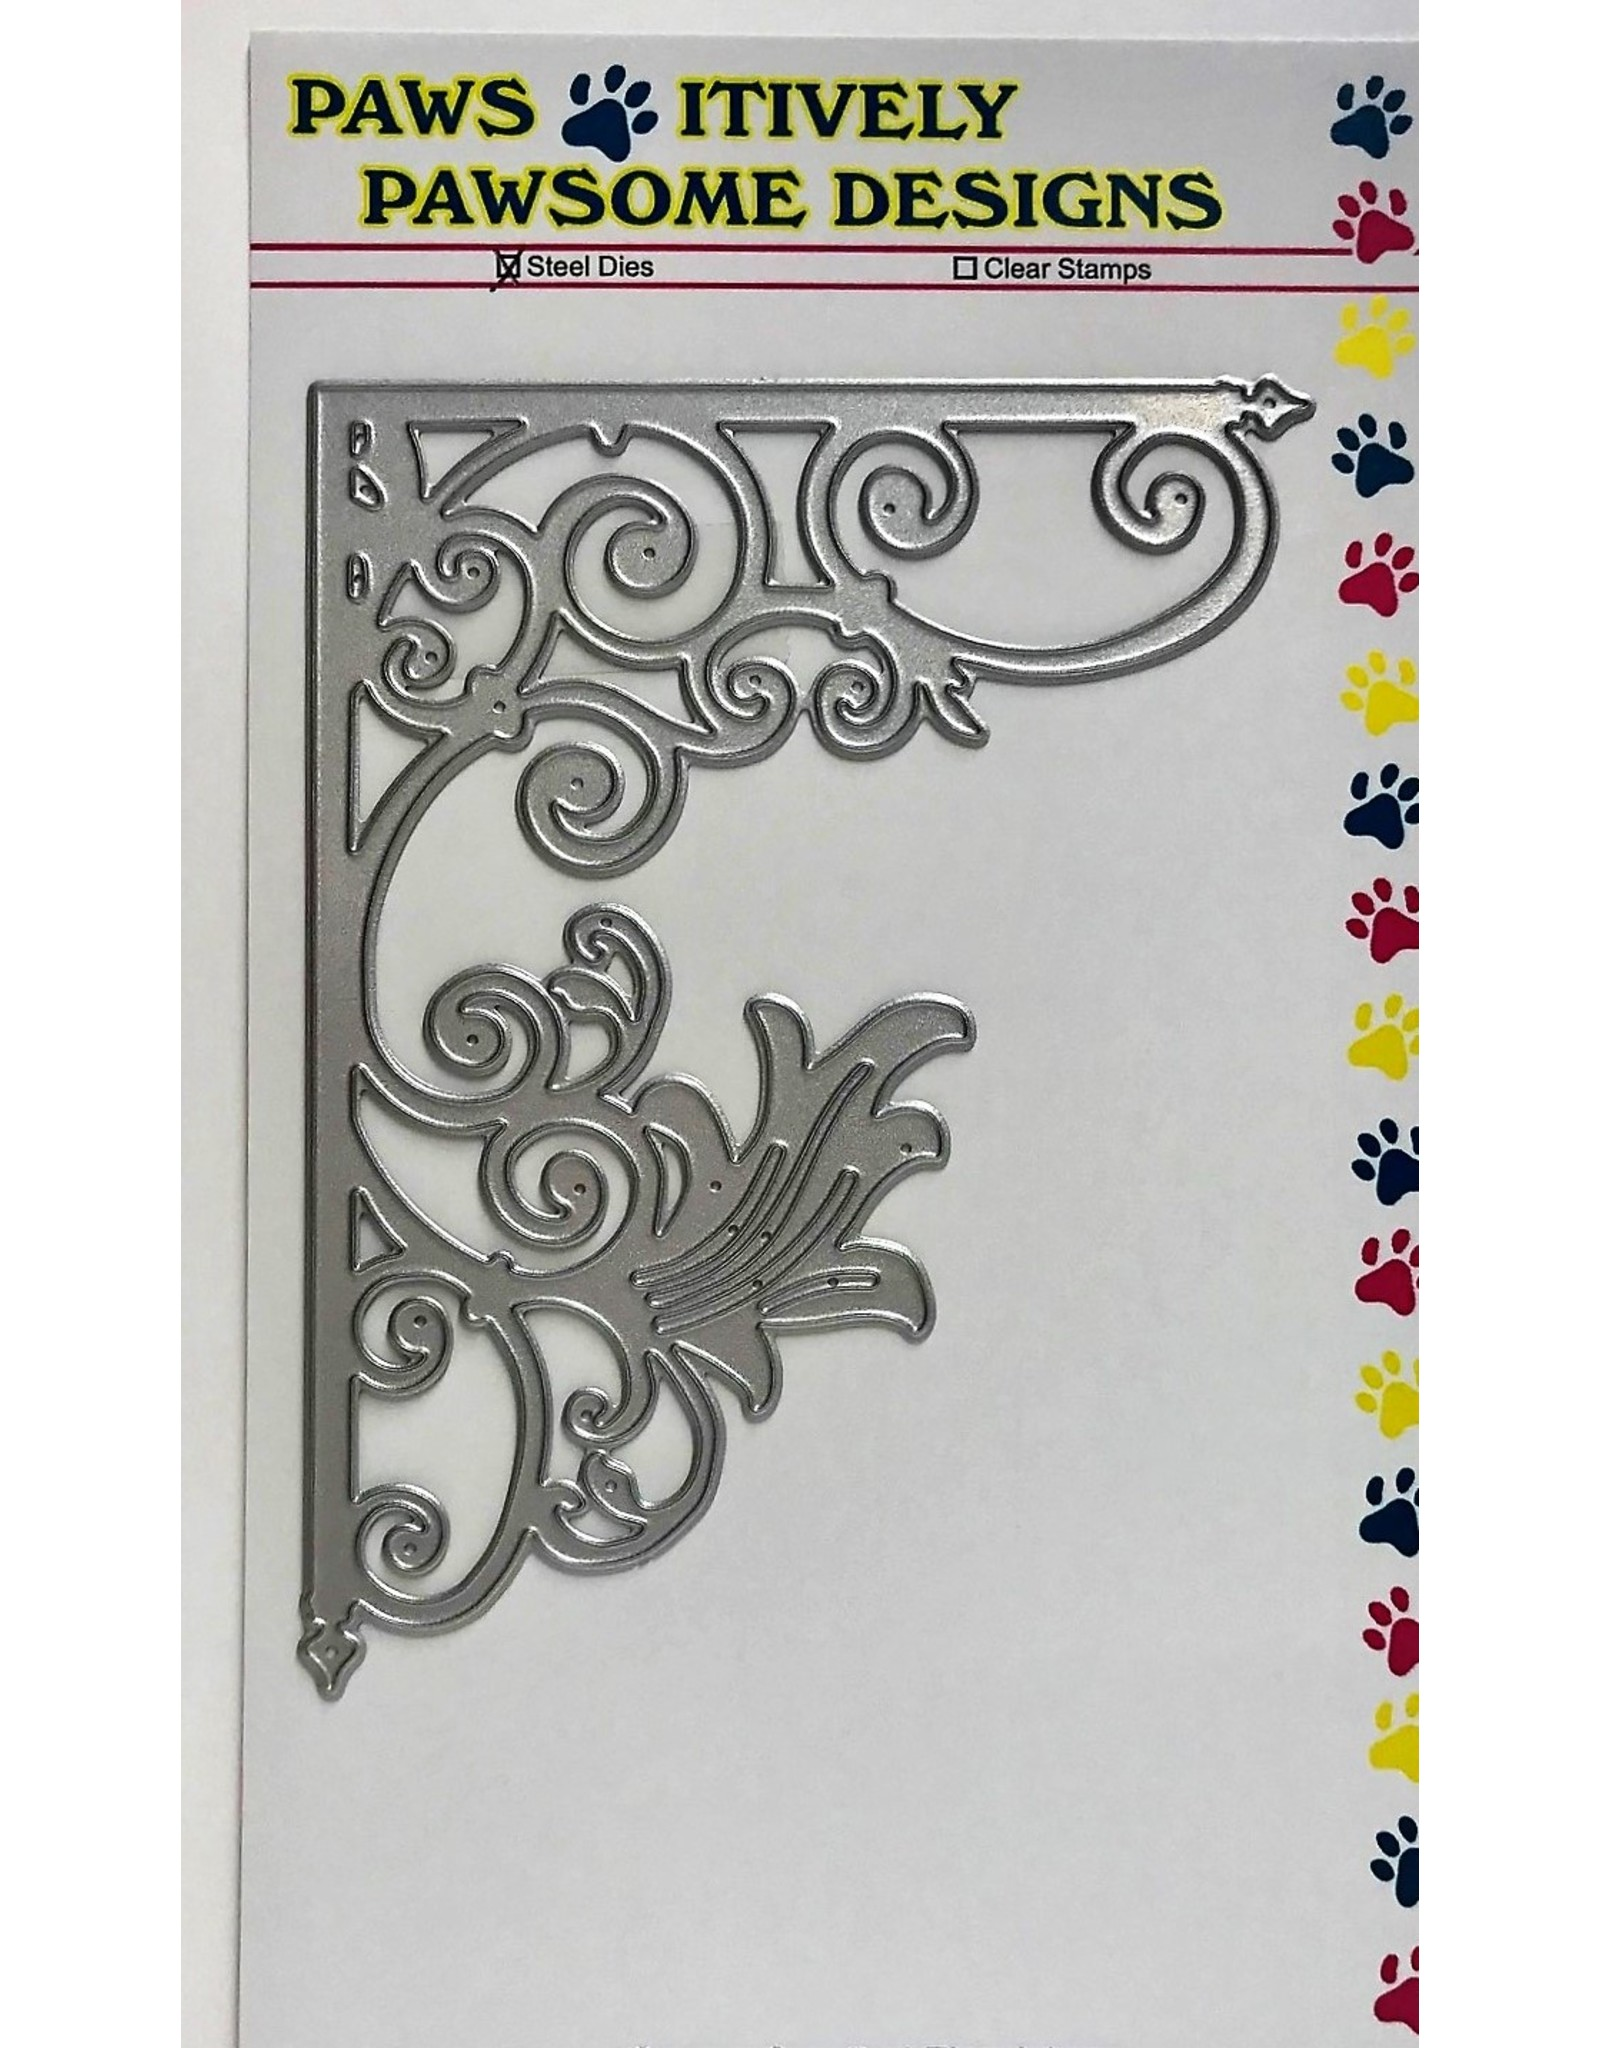 Paws-Itively Pawsome Designs Corner Scrolled Flourish - Die